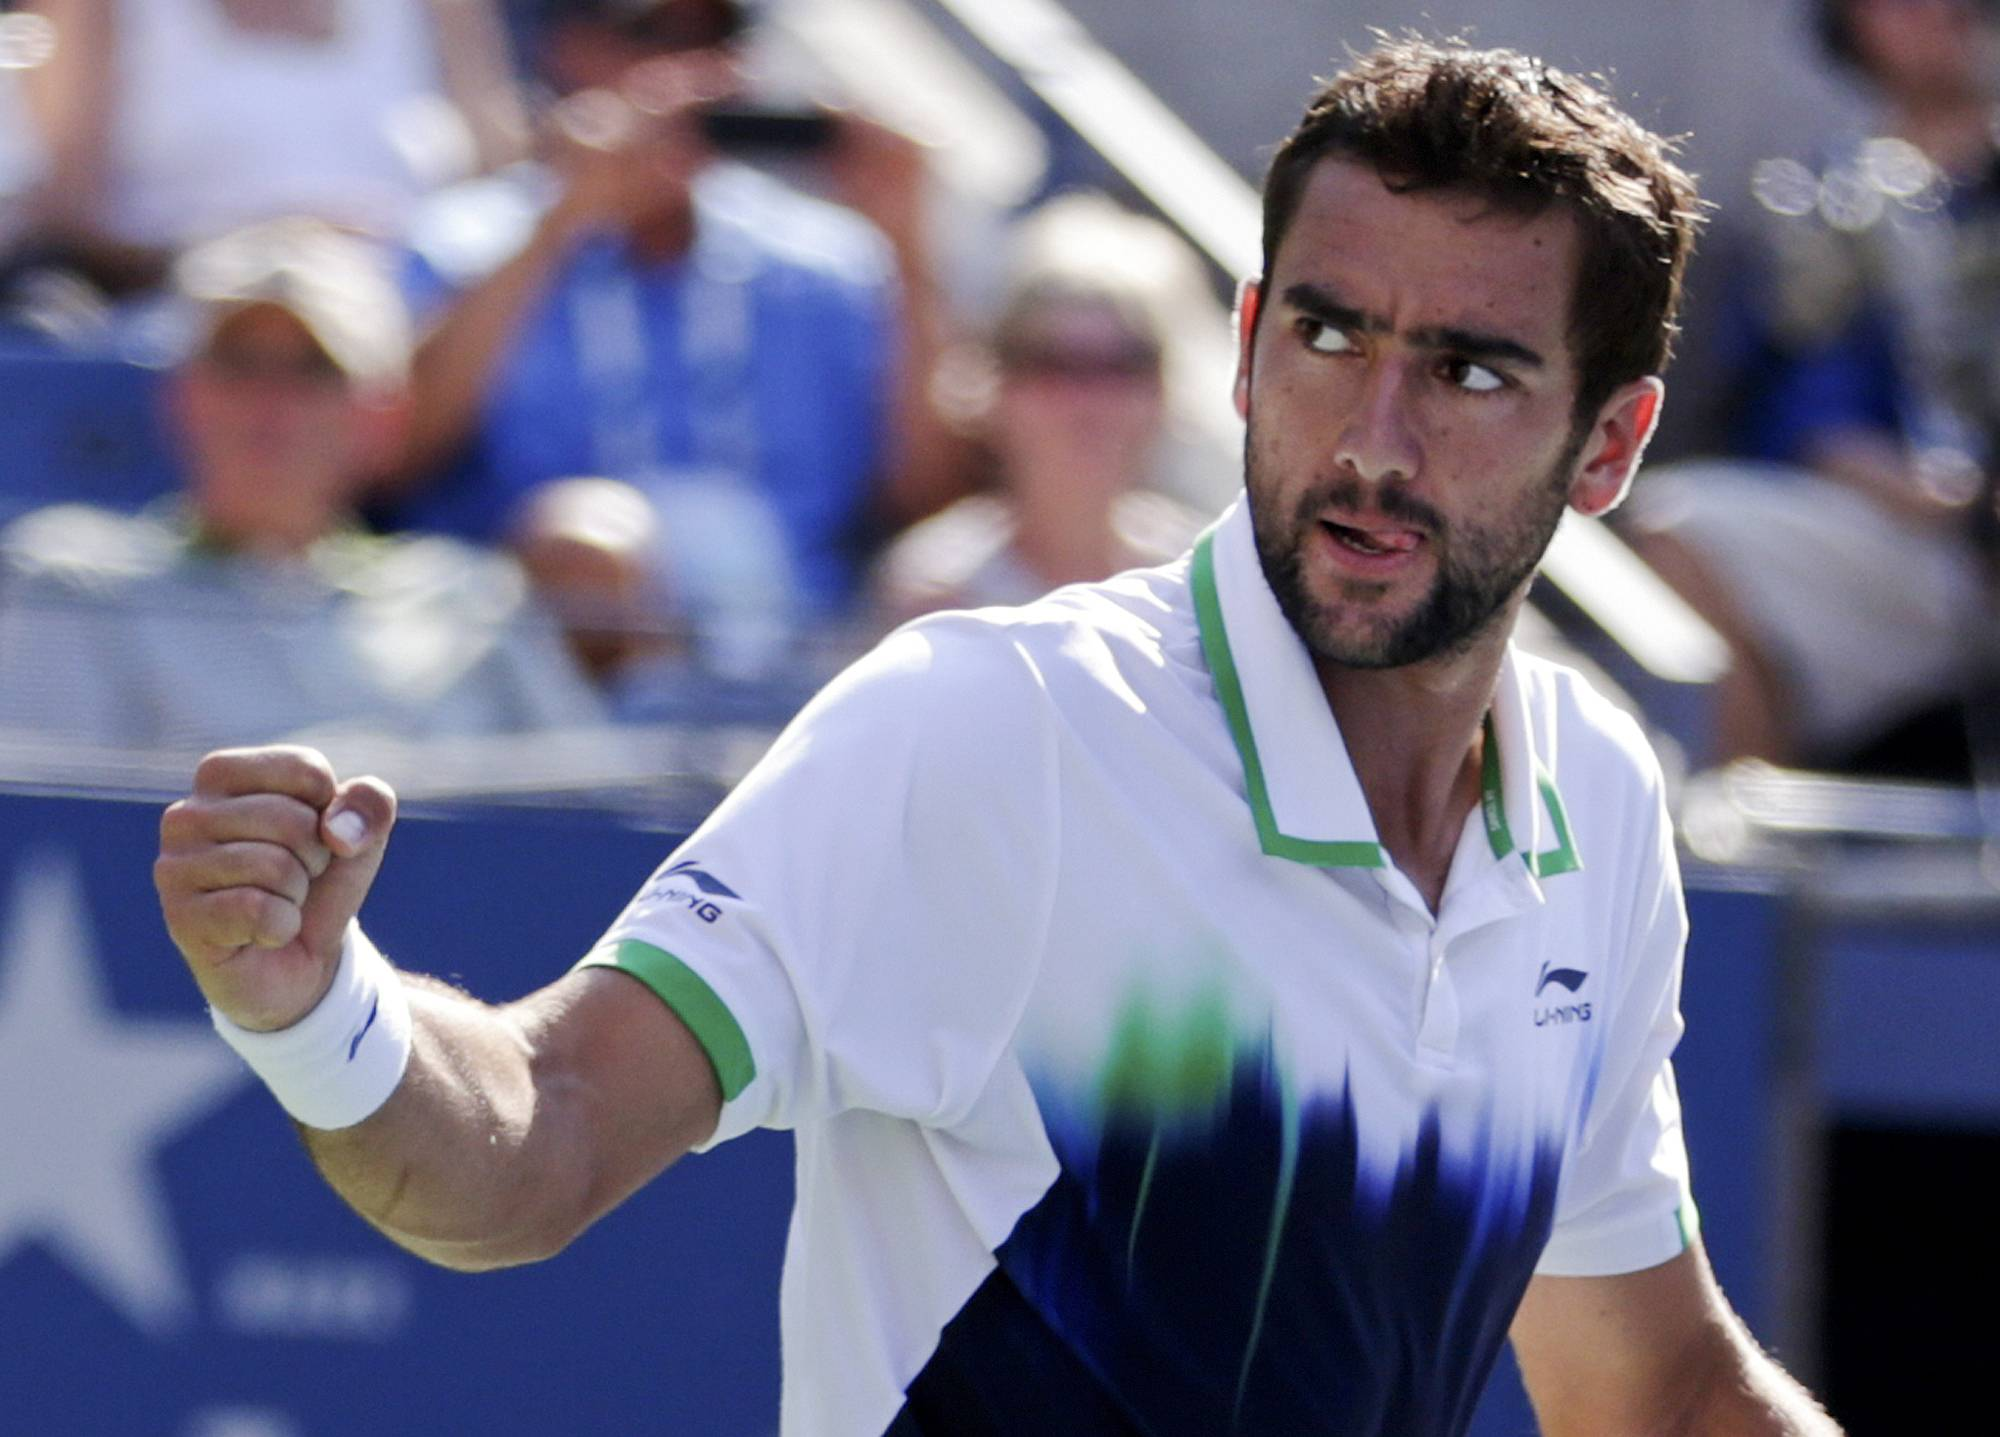 Marin Cilic reached his first Grand Slam semifinal in more than four years, upsetting sixth-seeded Tomas Berdych in straight sets at the U.S. Open. The 14th-seeded Croat won 6-2, 6-4, 7-6 (4) on Thursday. Cilic missed last year's U.S. Open because of a doping suspension after testing positive for a banned stimulant. He said he ingested it unintentionally from a glucose tablet bought at a pharmacy.